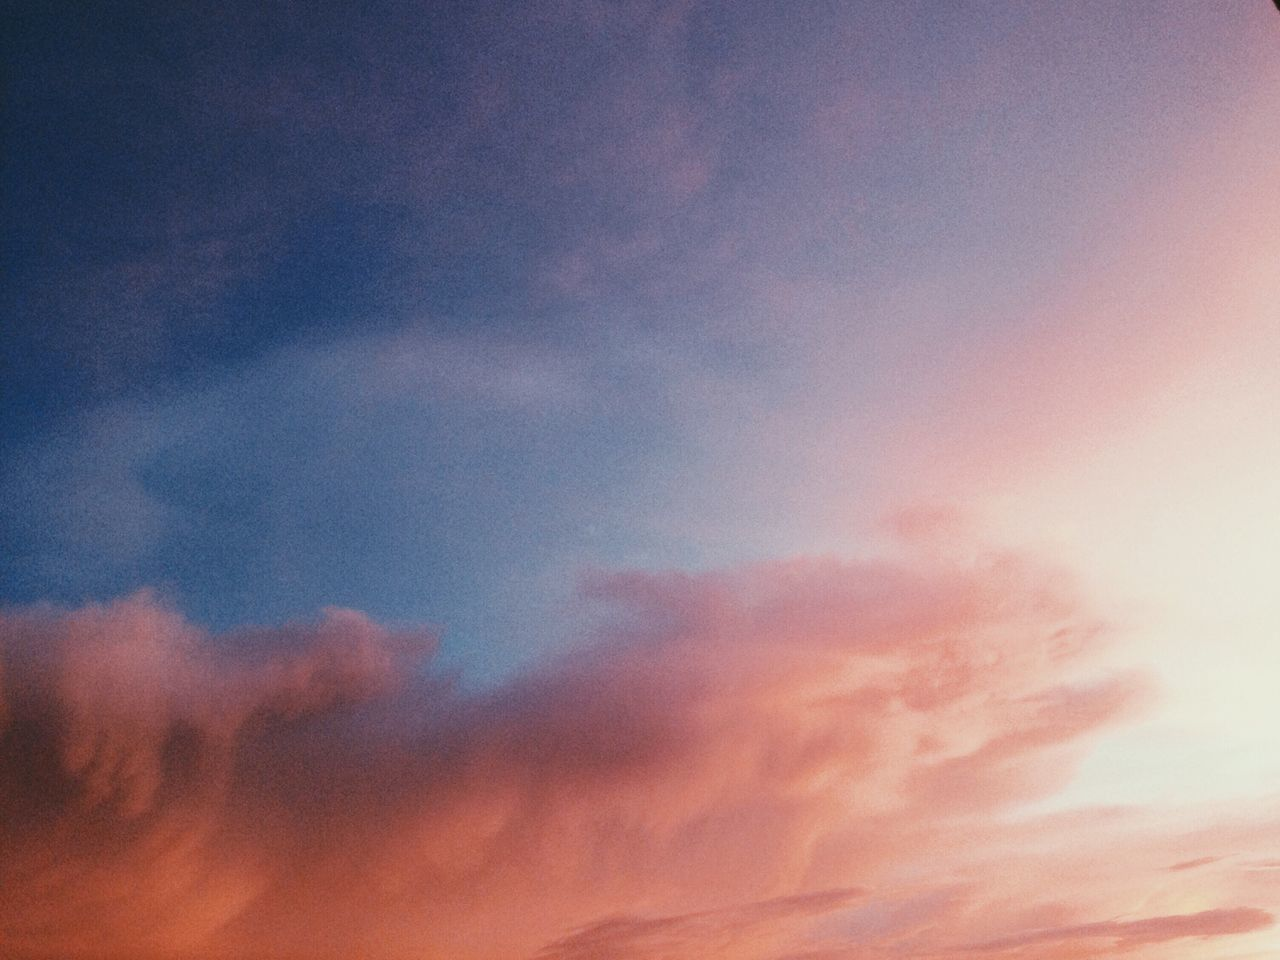 sky, beauty in nature, nature, low angle view, sunset, cloud - sky, scenics, multi colored, sky only, tranquil scene, no people, tranquility, outdoors, abstract, backgrounds, day